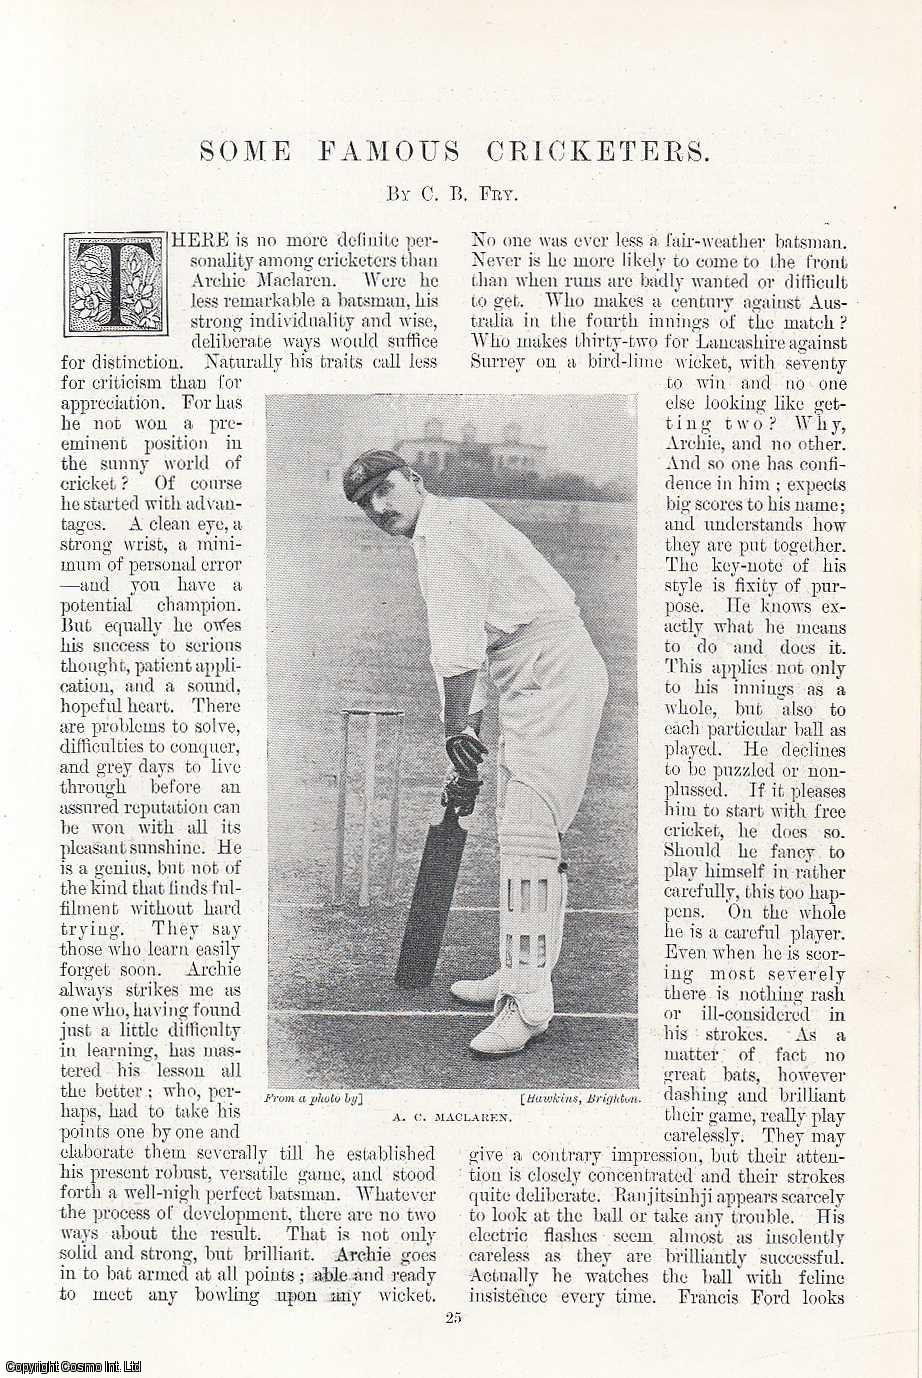 Some Famous Cricketers., Fry, C. B.